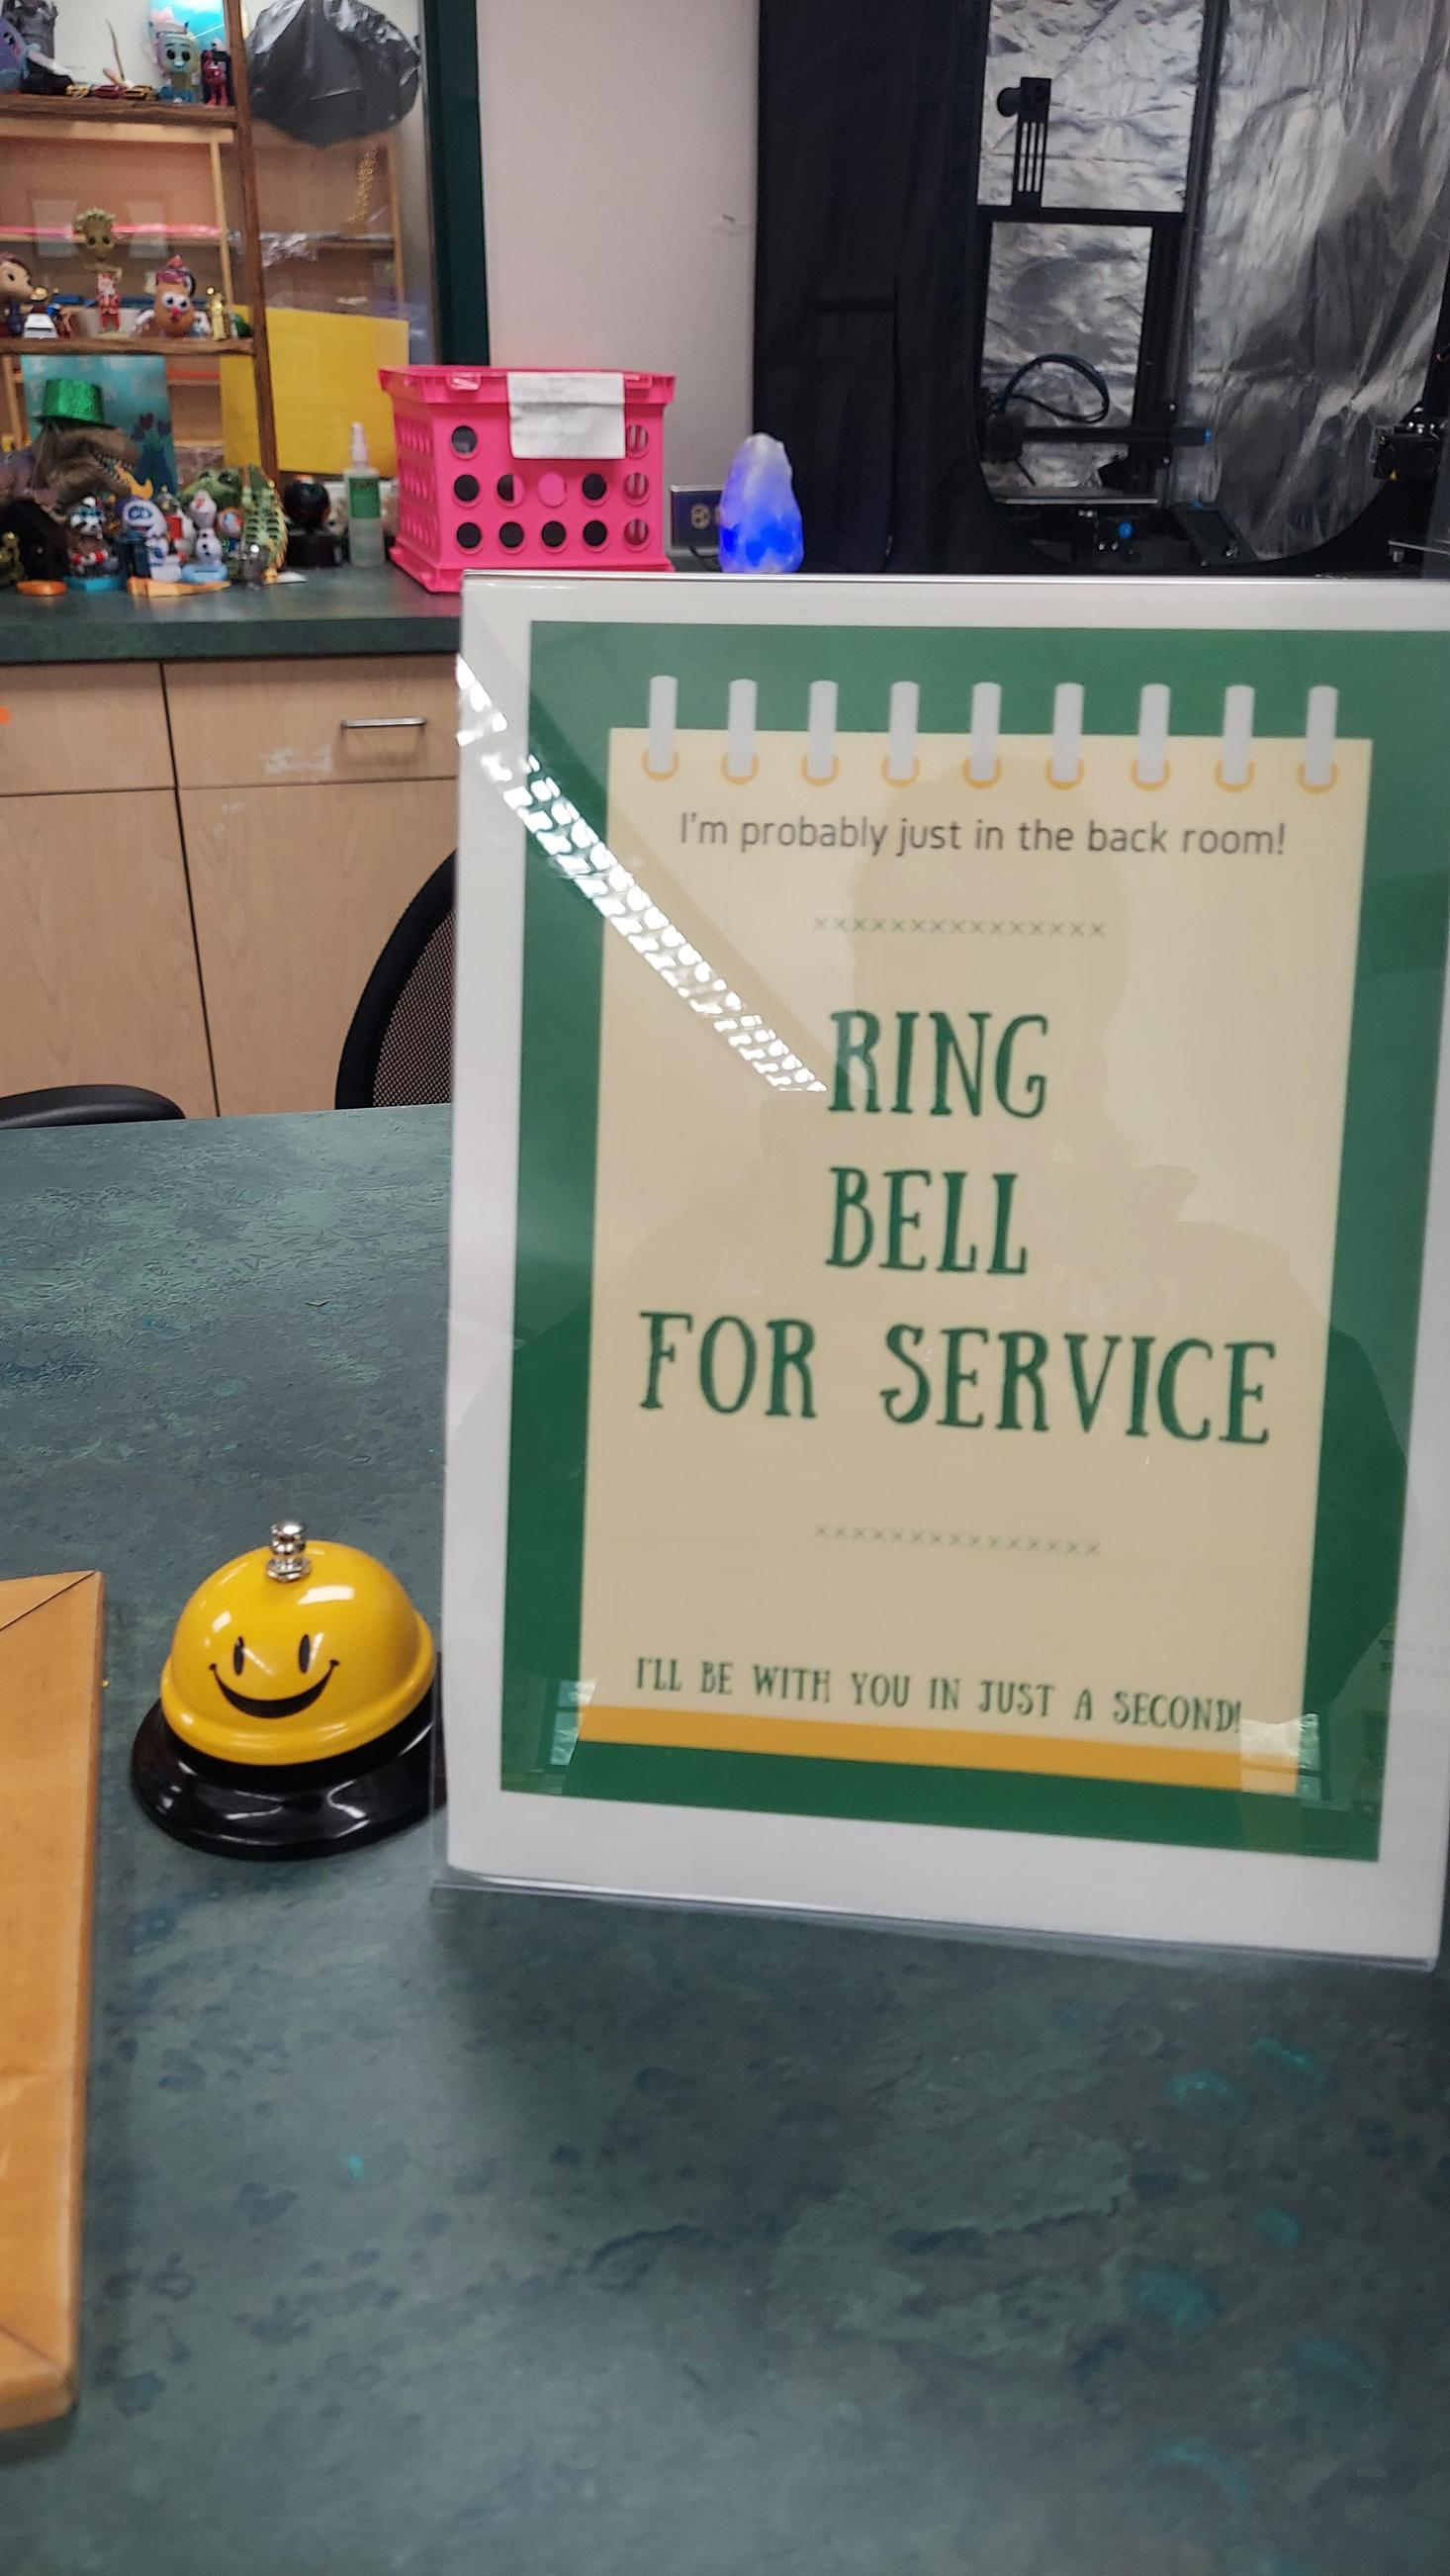 Ring bell for service!